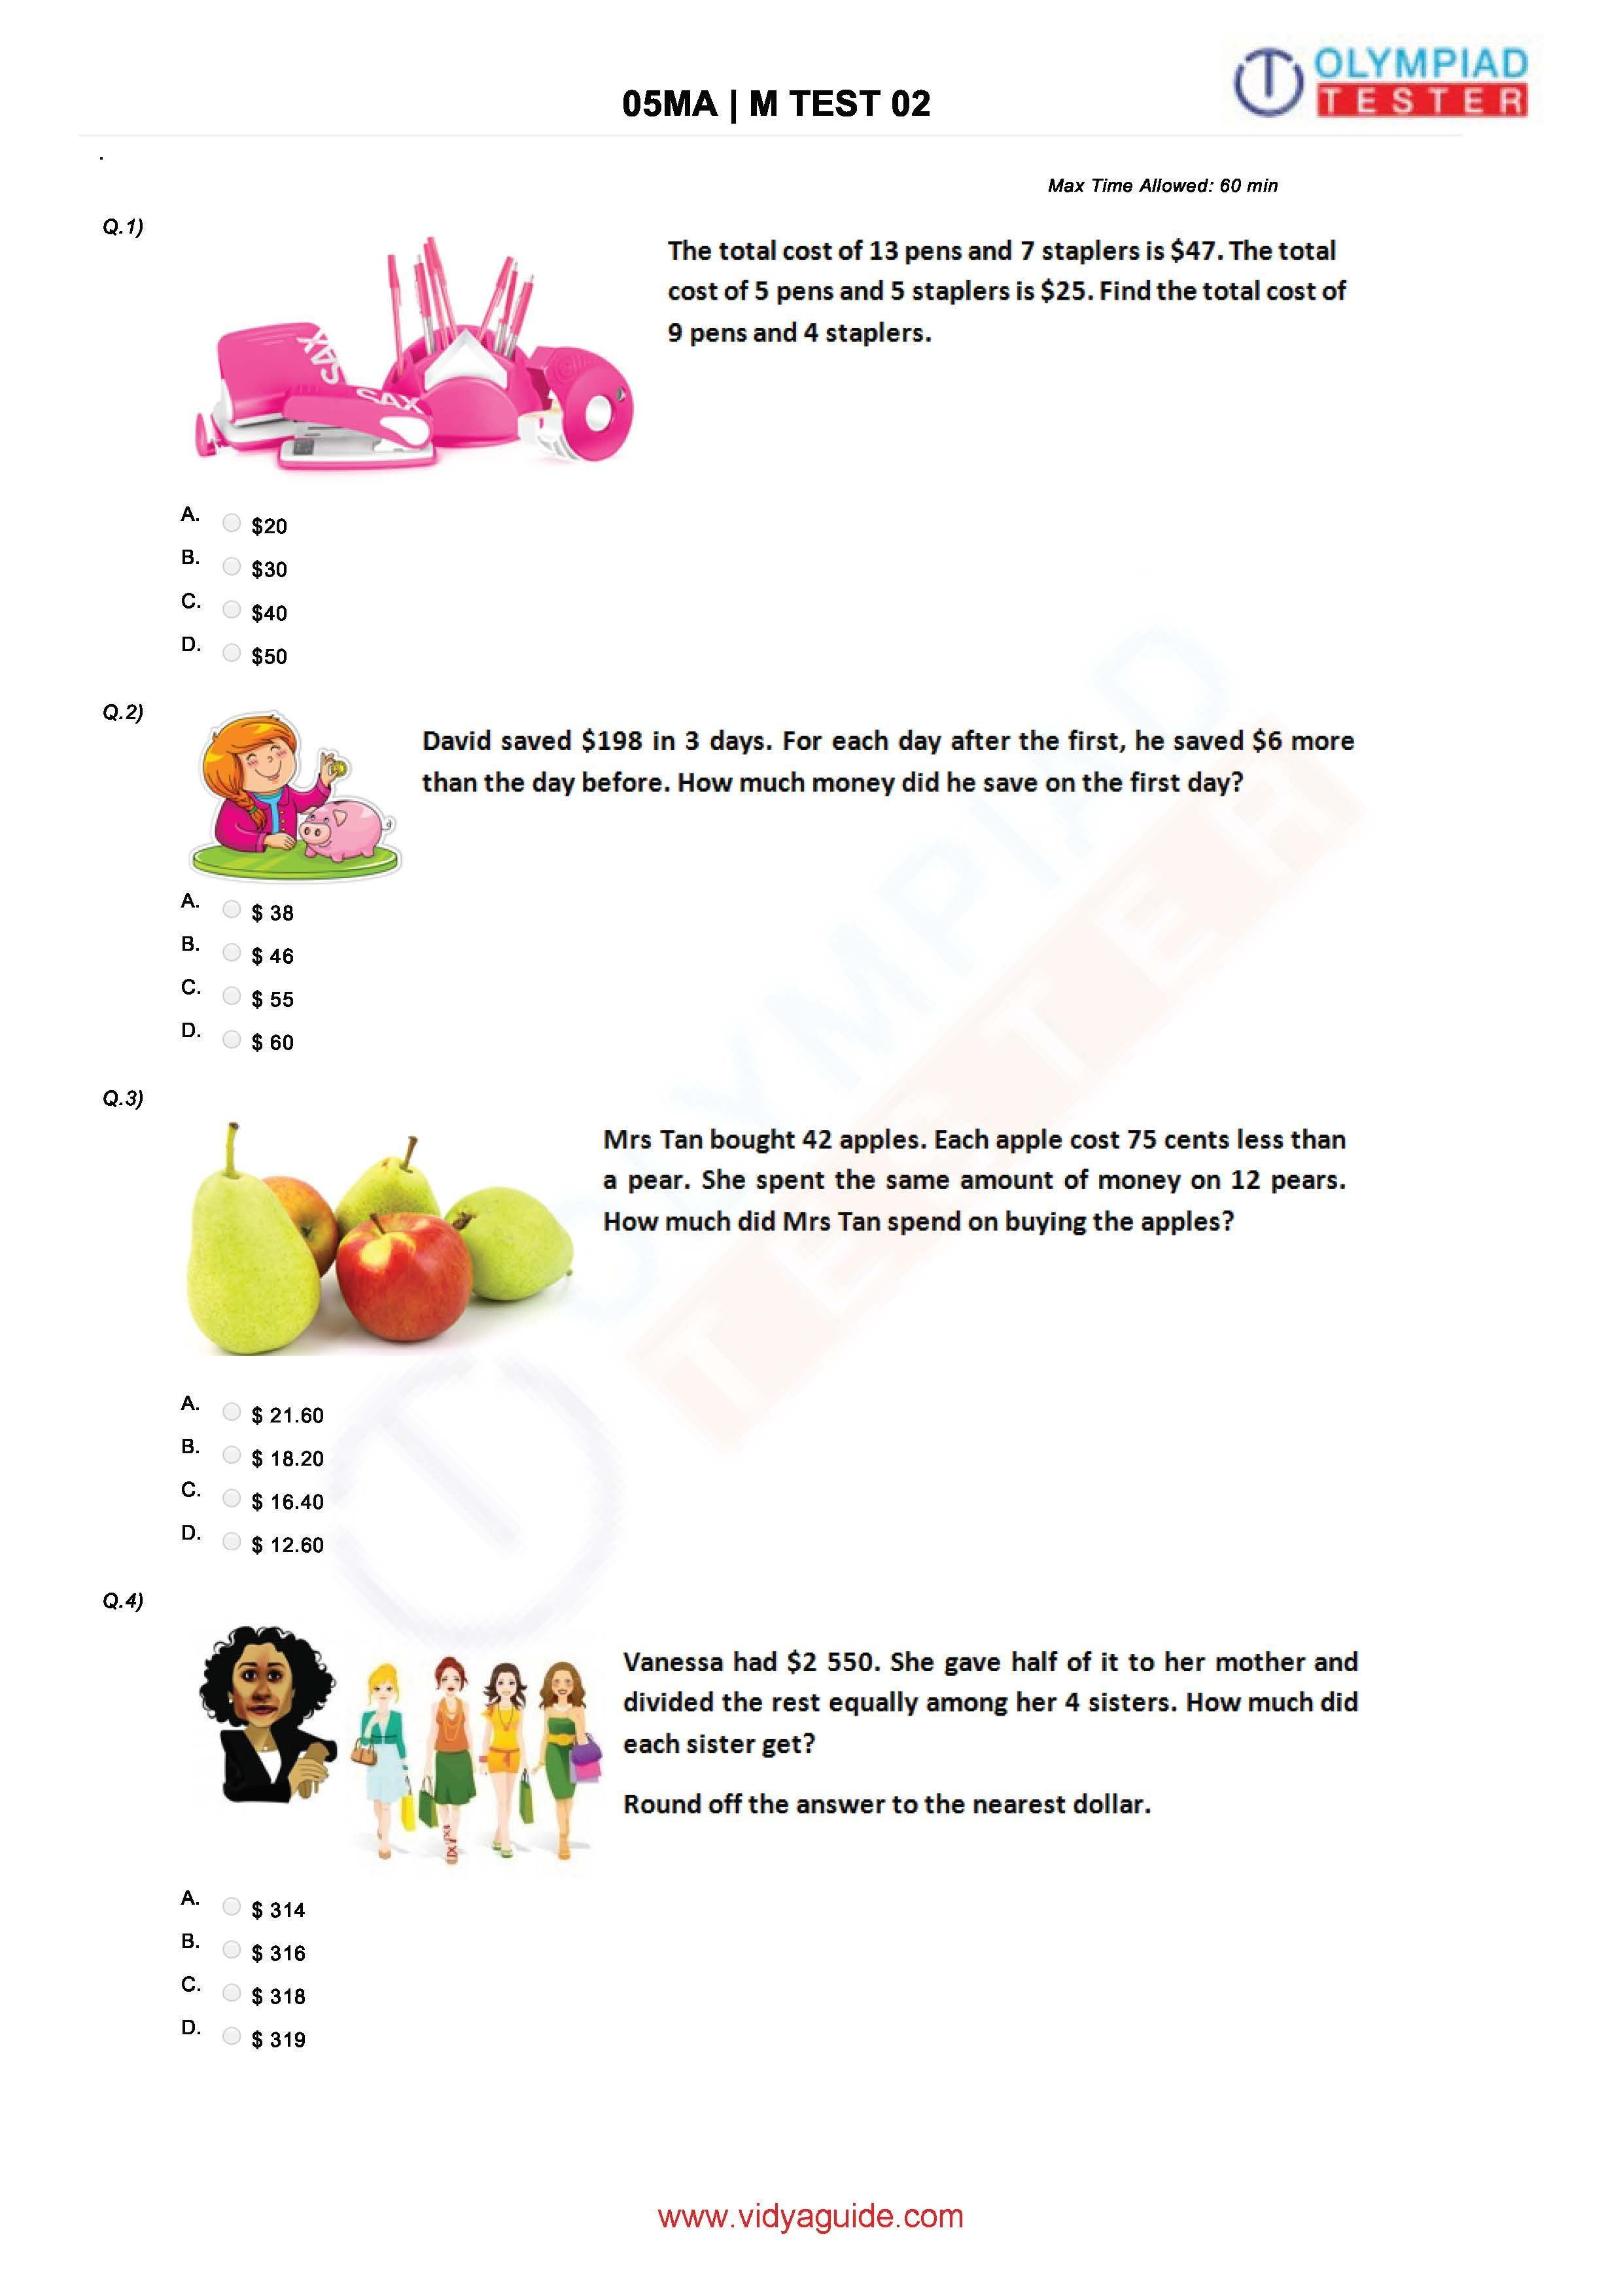 5th Grade Math Olympiad Worksheet Printable Worksheets Are A Valuable School Room Tool They Not In Simp In 2021 5th Grade Math Math Olympiad Grade 5 Math Worksheets Math worksheets for grade online